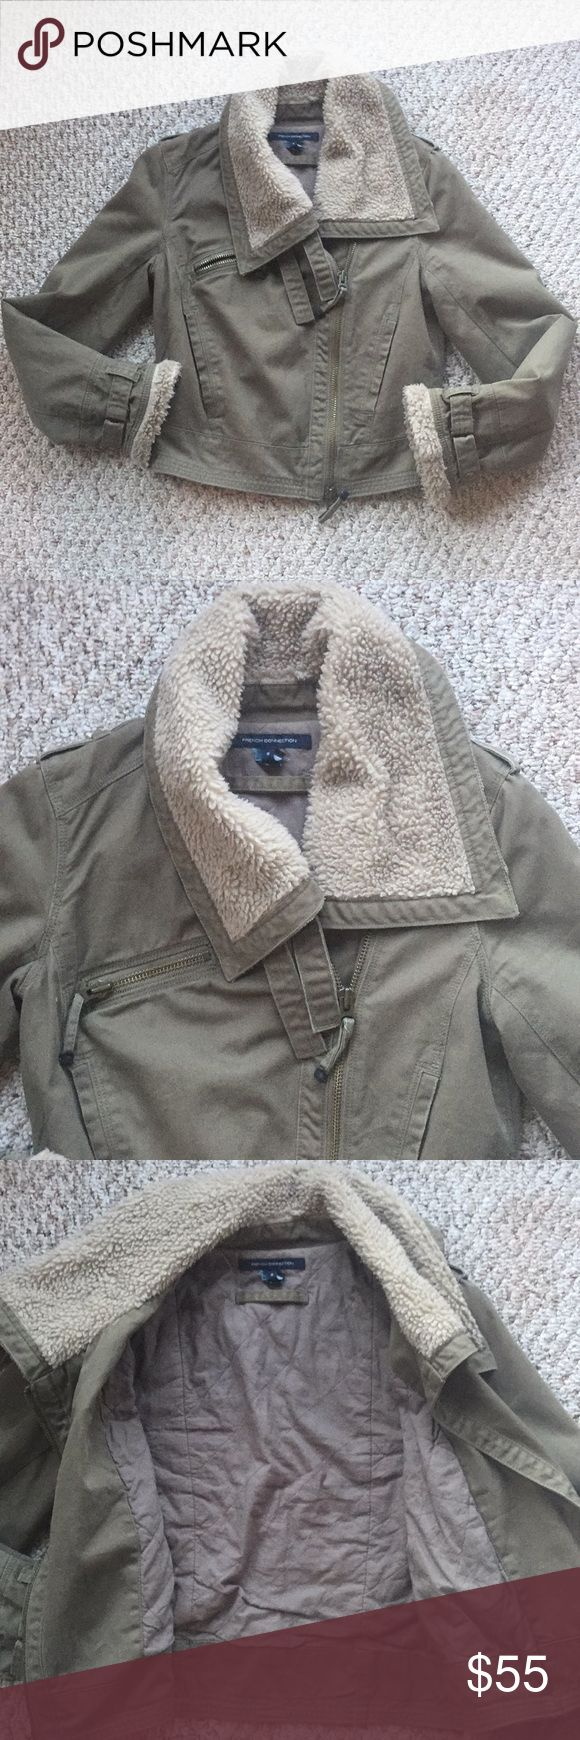 French Connection Army Green Jacket French Connection Army Green short jacket. Hits right at the waist. Not cropped. Length almost 11 inches. Arm length a lil over 23 inches. Armpit to armpit about 17 inches. Great condition. All cotton. French Connection Jackets & Coats